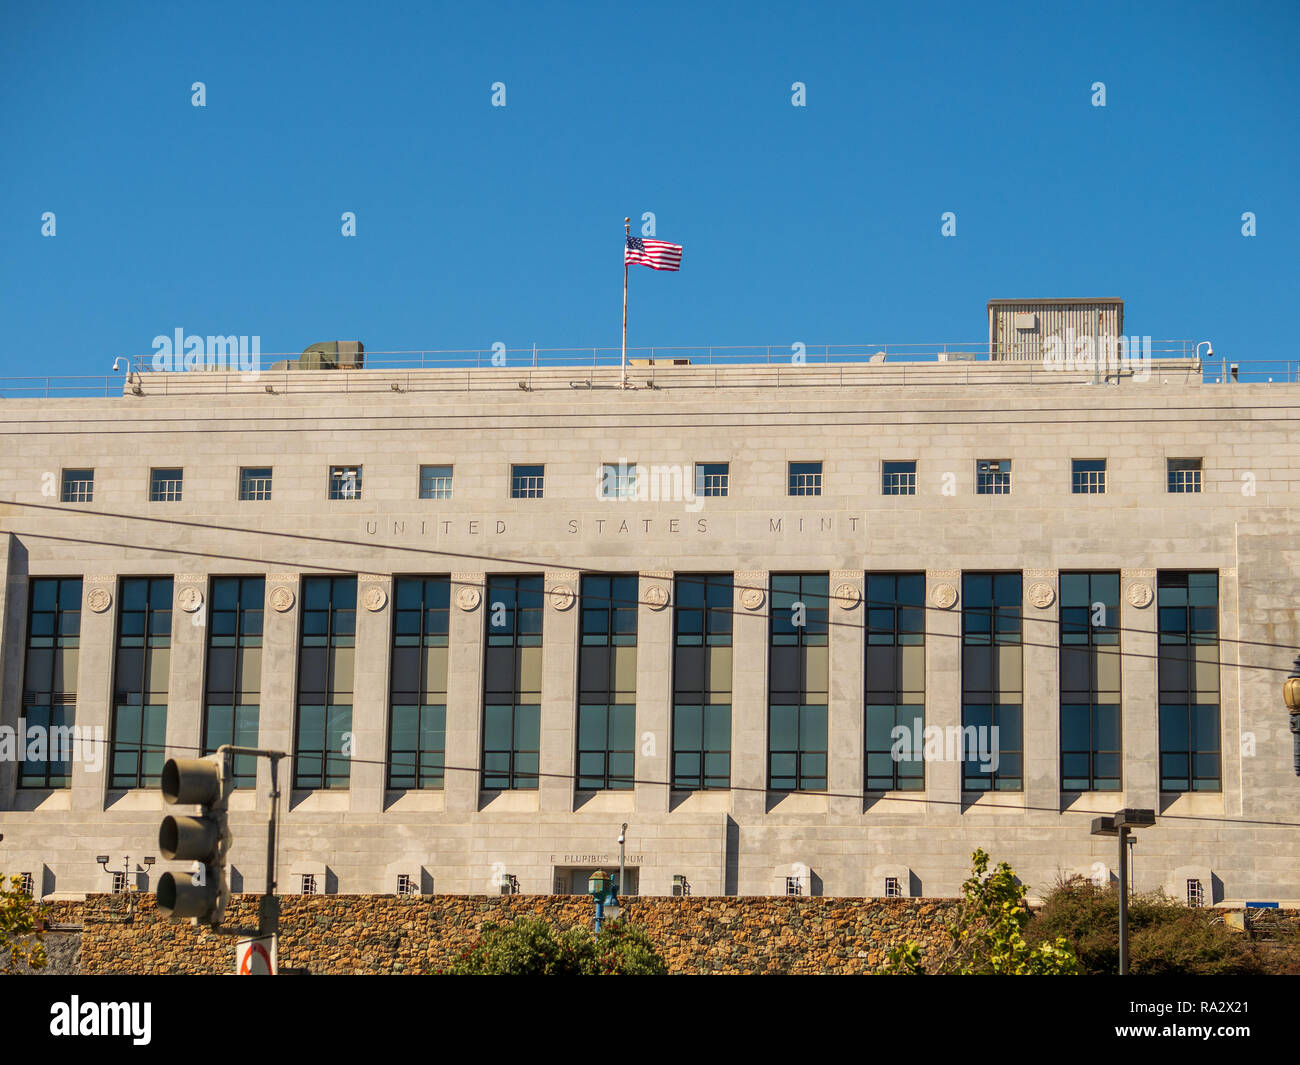 United States mint location in San Francisco - Stock Image